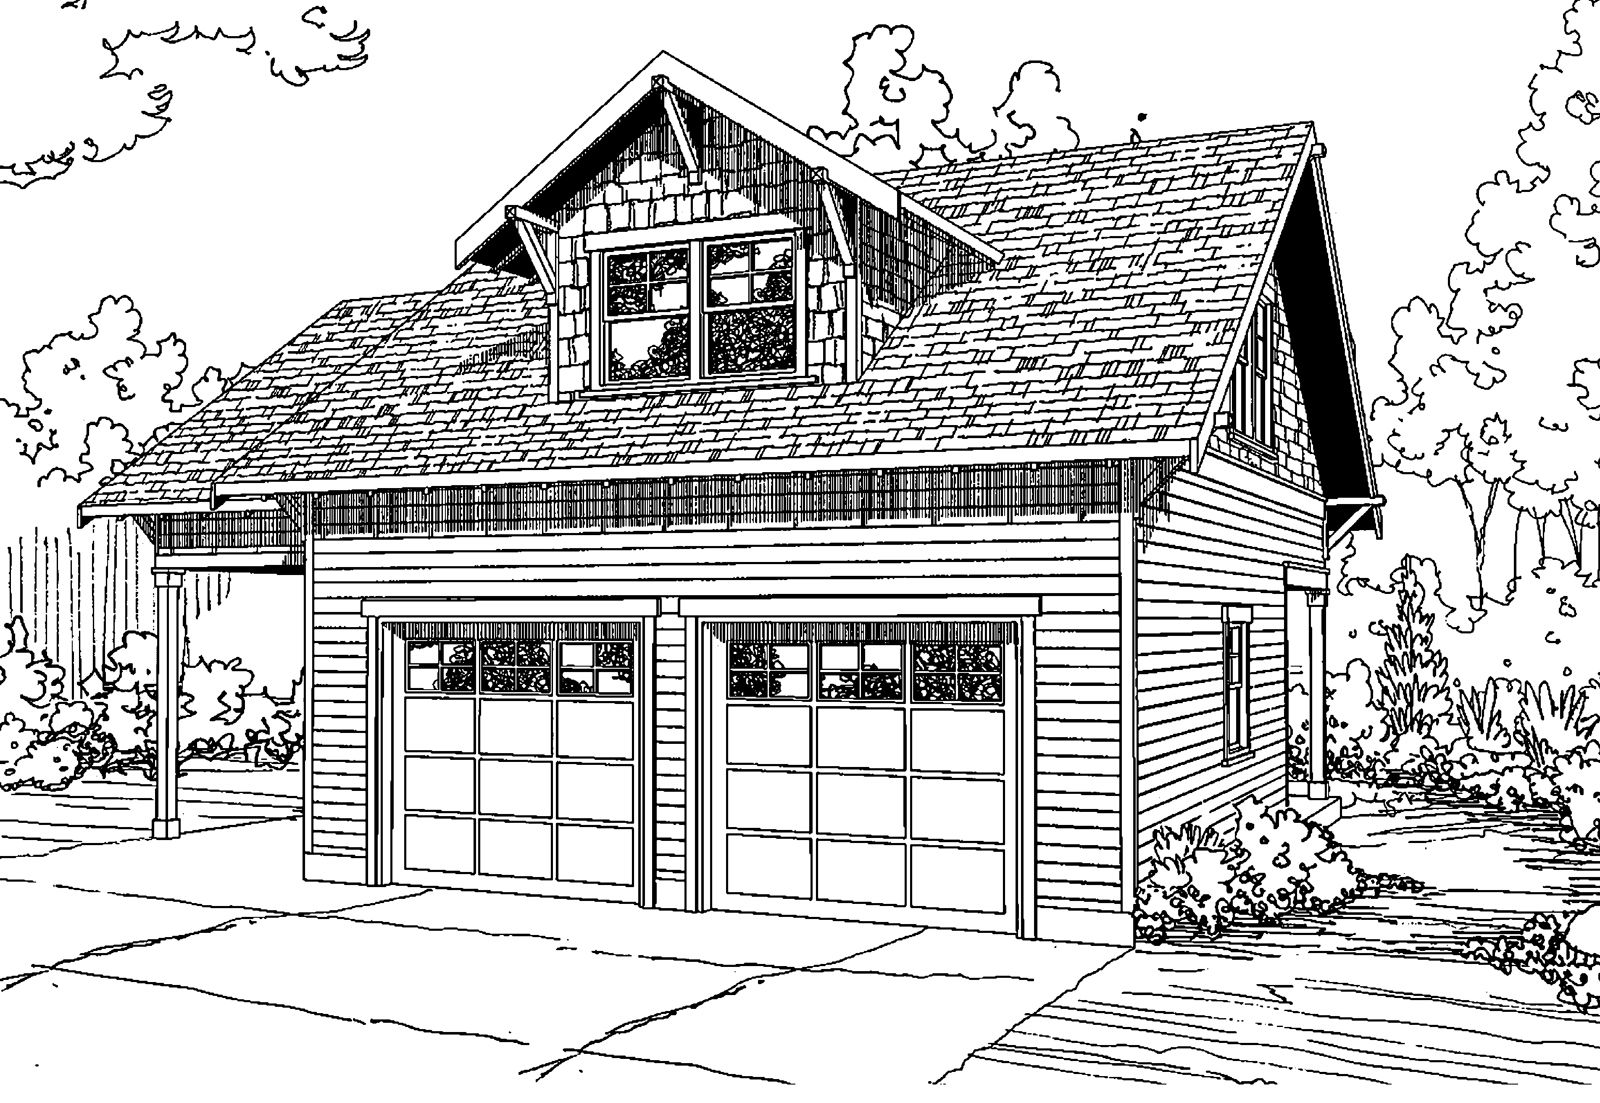 Garage Plan 20 111 This Craftsman Garage Plan Can House Two Cars Plus One Extra In The Attached Carport Up Garage Plans With Loft Garage Plans Garage Plan